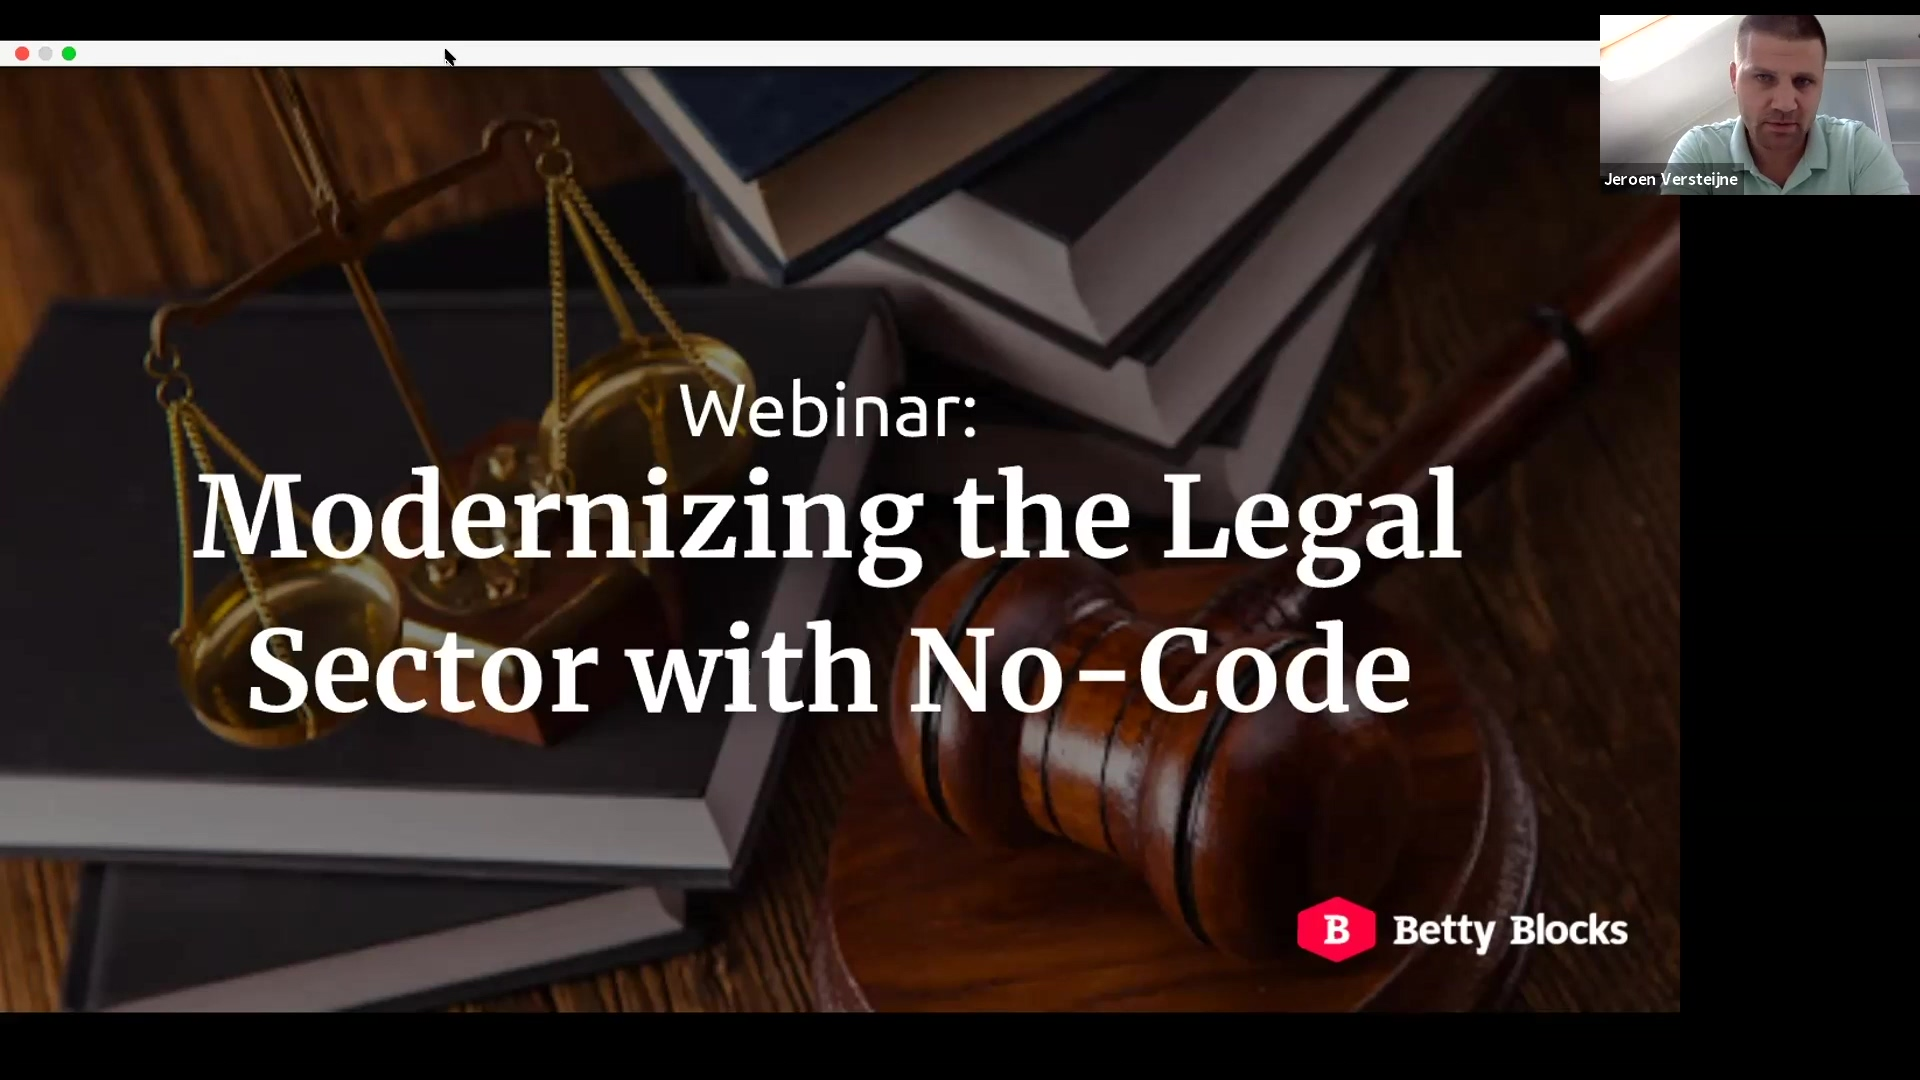 Webinar 12 Modernizing the Legal Sector with No-Code recap video